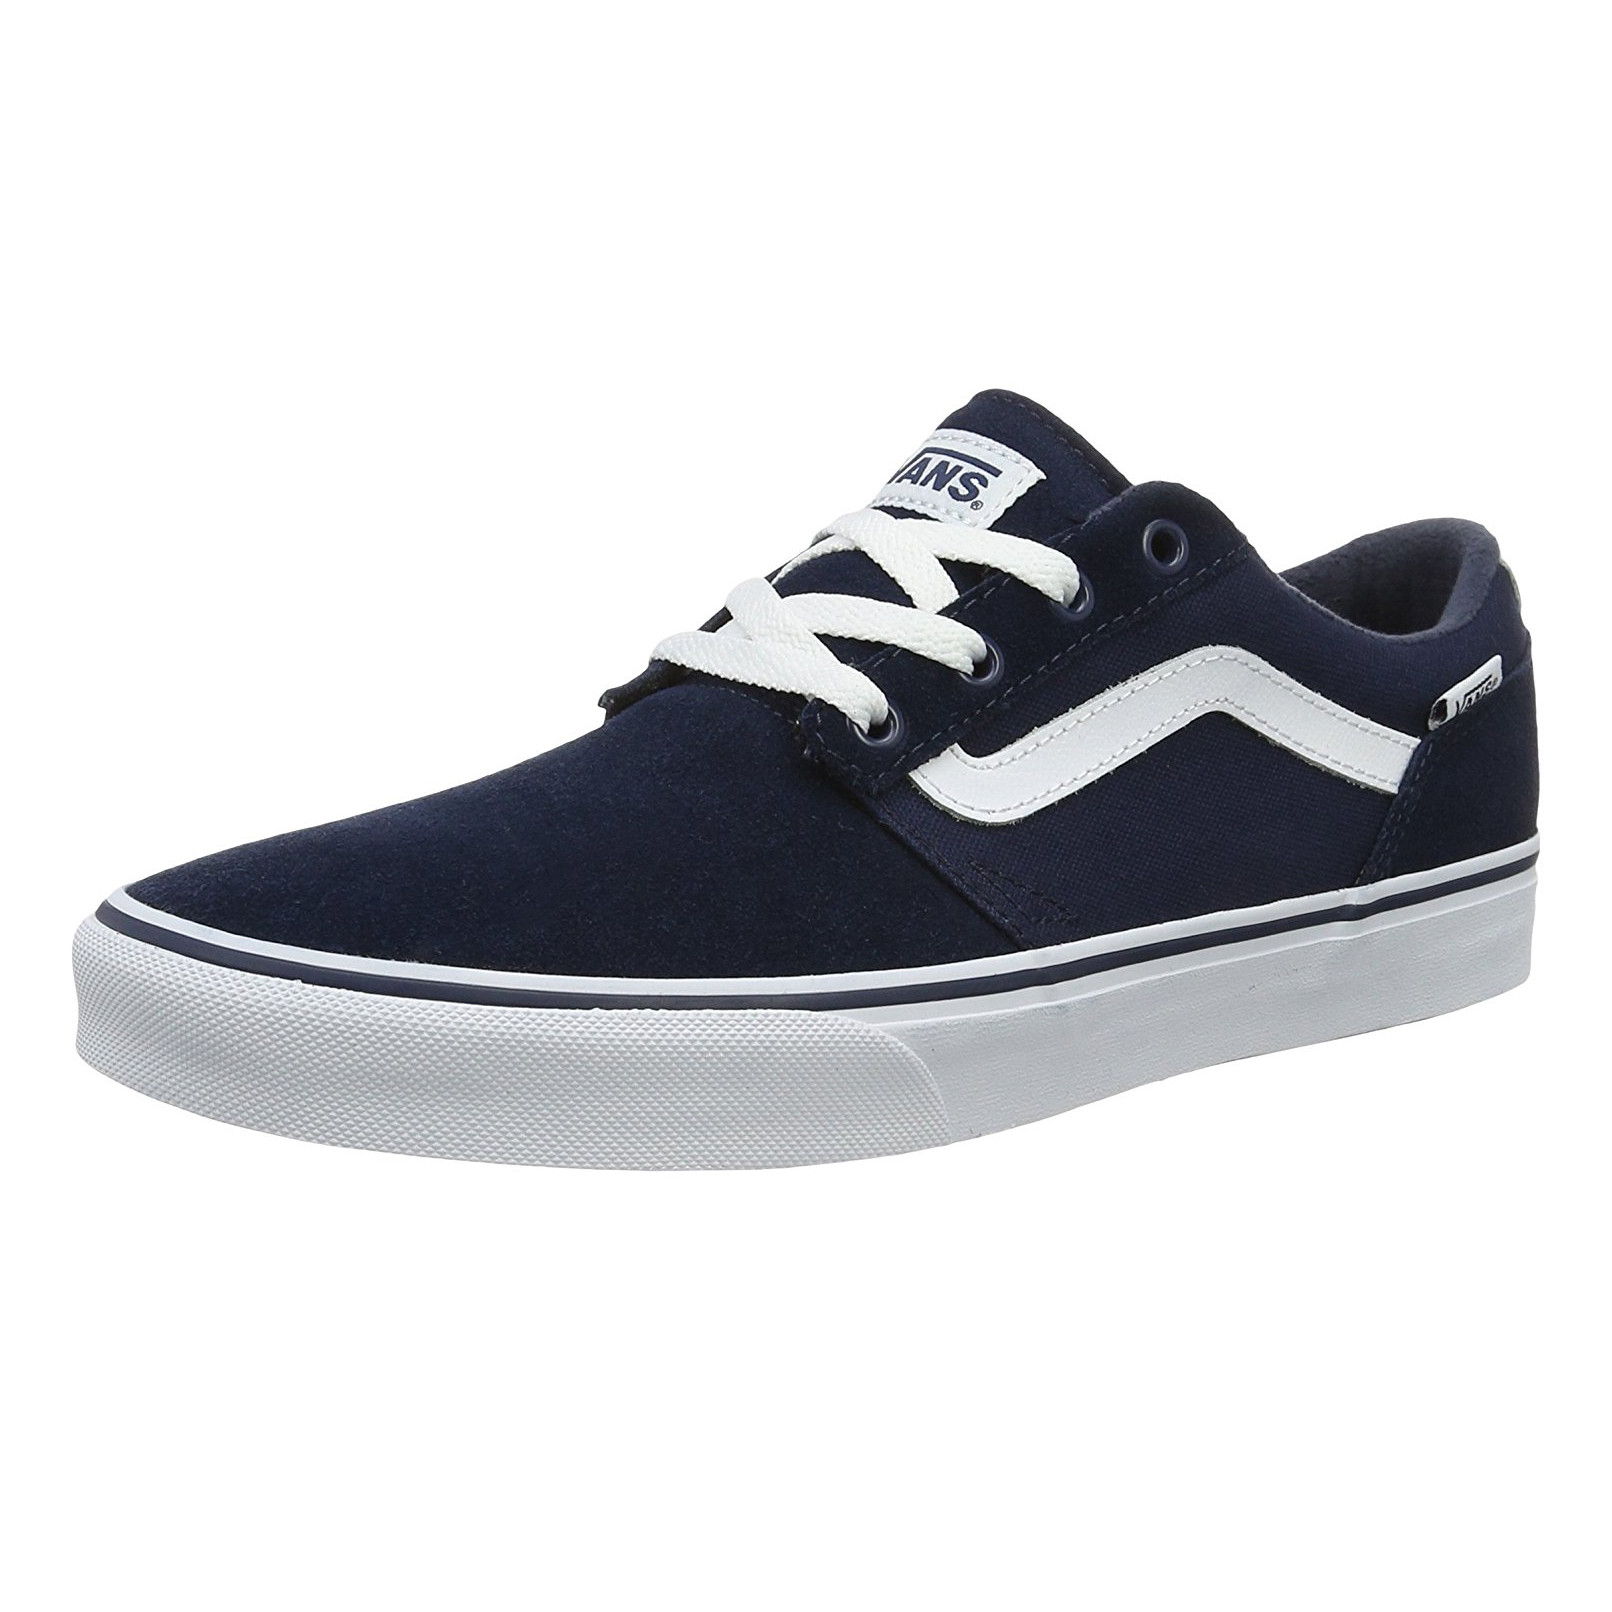 vans men 39 s chapman low stripe suede canvas shoes trainers dress blue jean scene. Black Bedroom Furniture Sets. Home Design Ideas